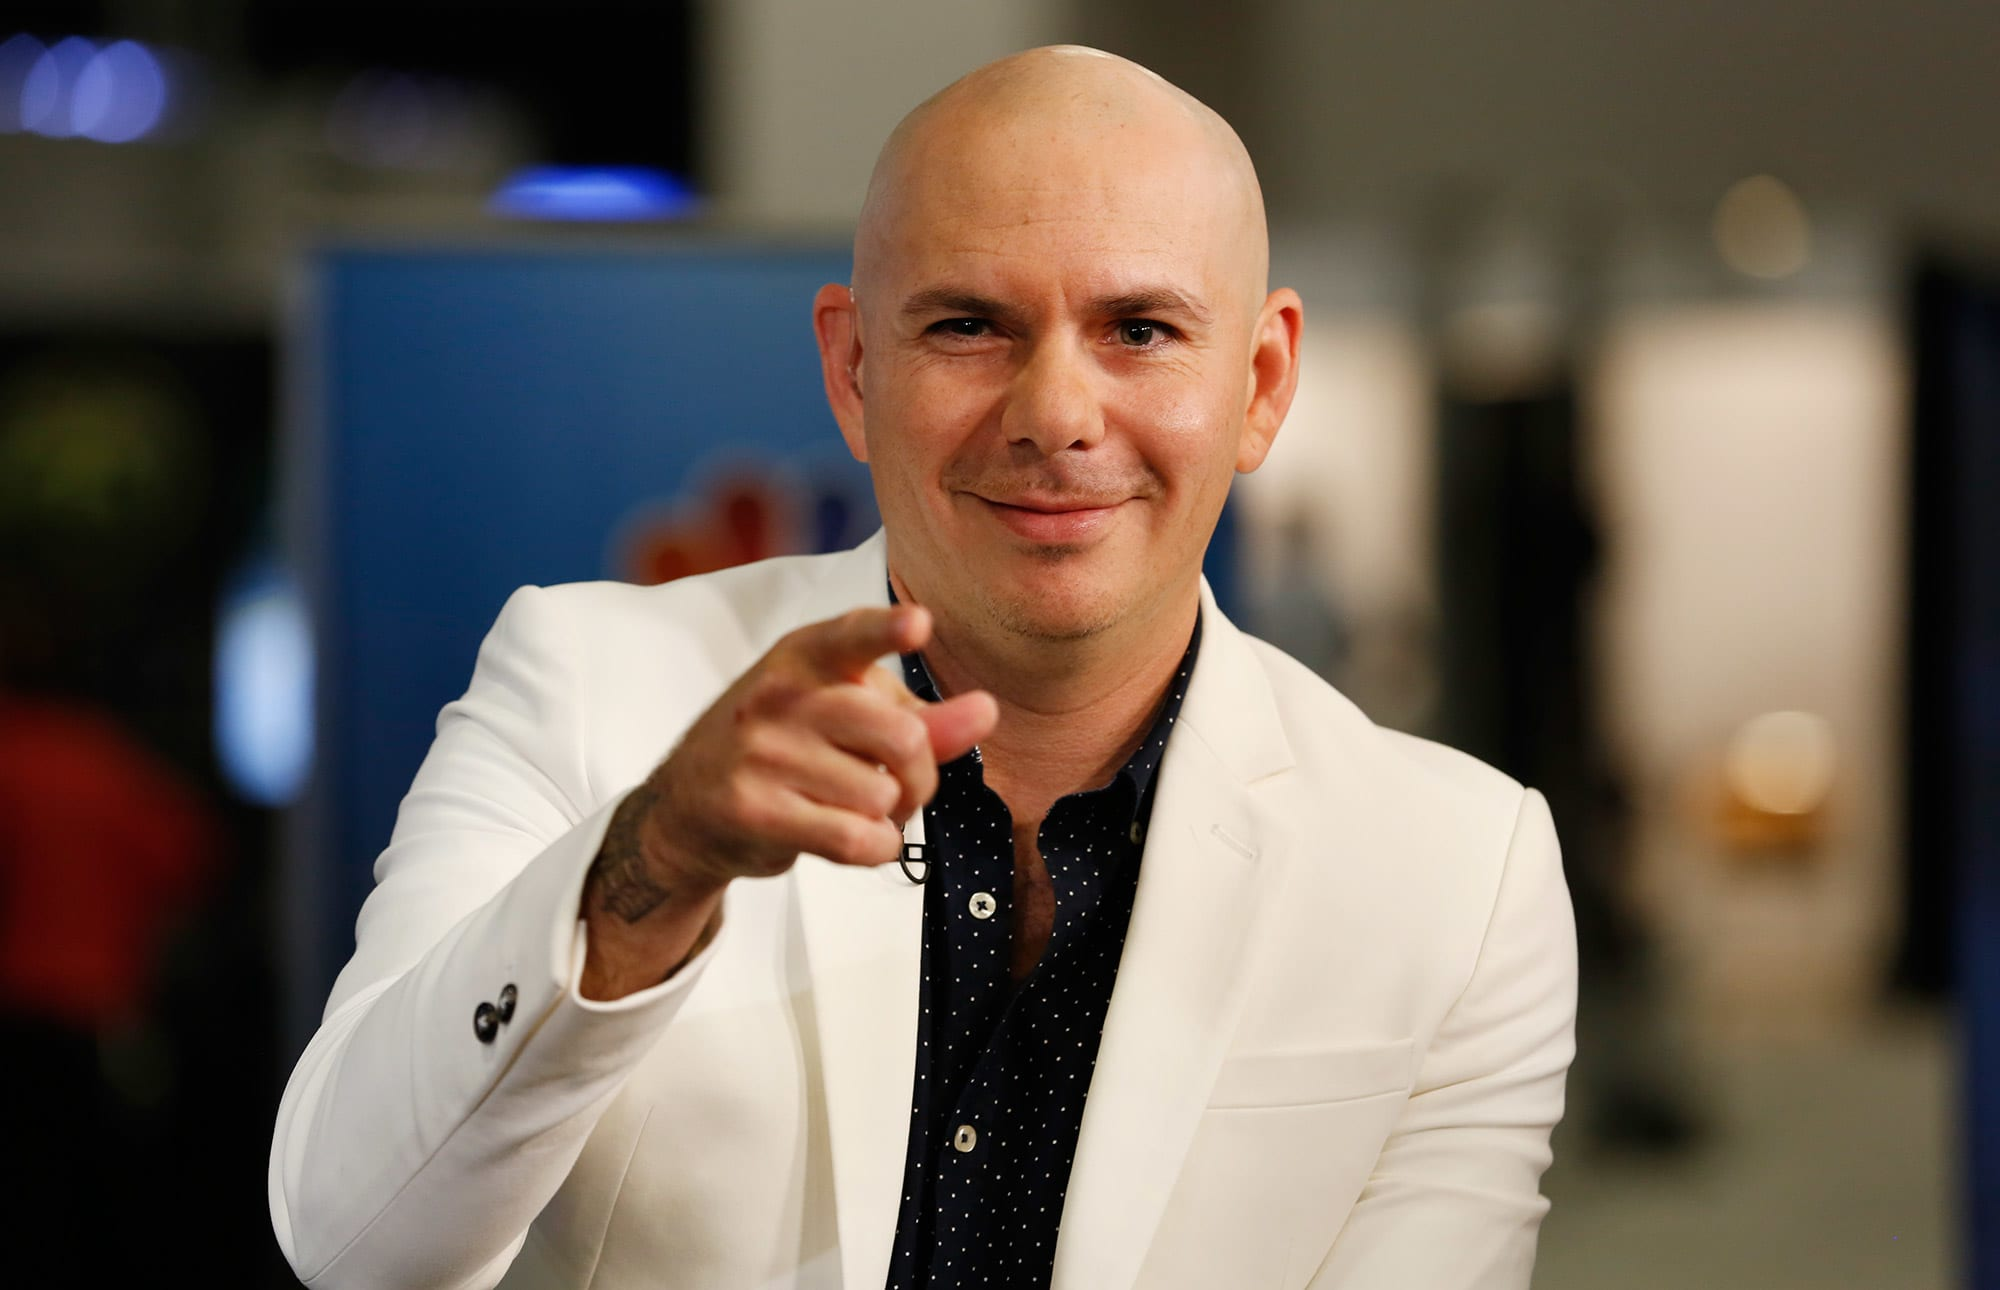 Pitbull at the eMerge Americas conference in Miami on June 12, 2017.